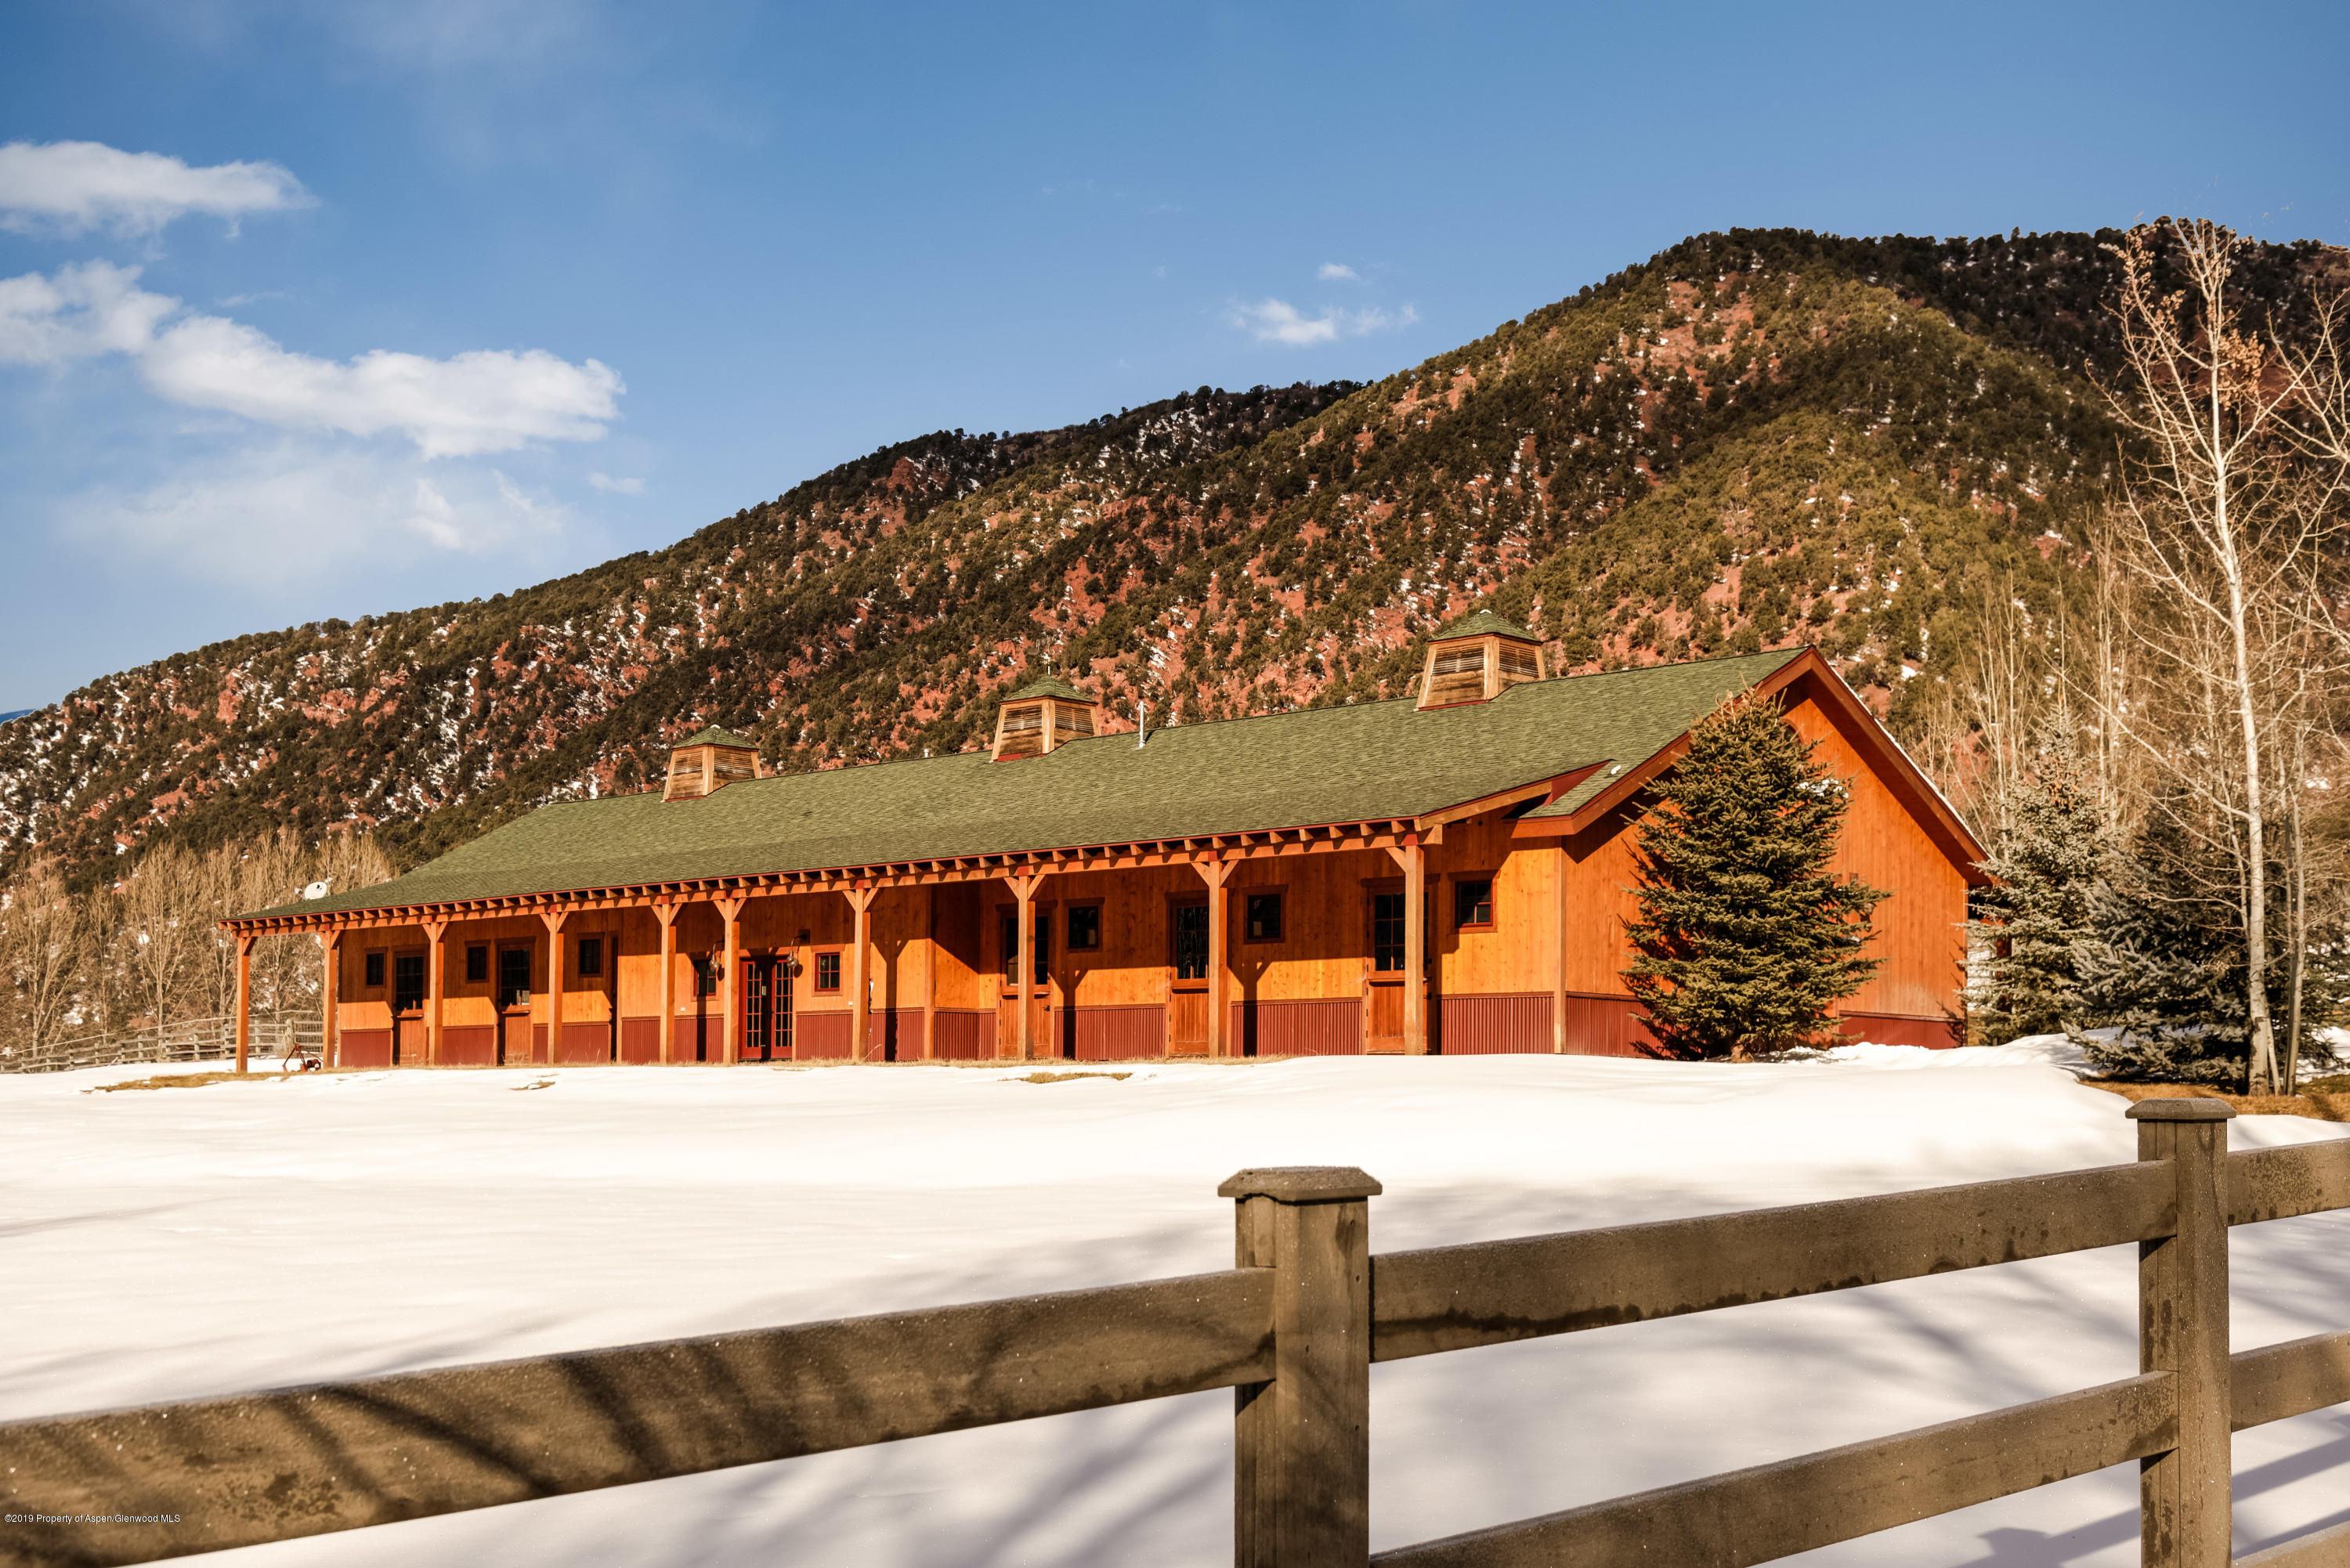 MLS# 135595 - 6 - 50 E River Ranch Road, Snowmass, CO 81654